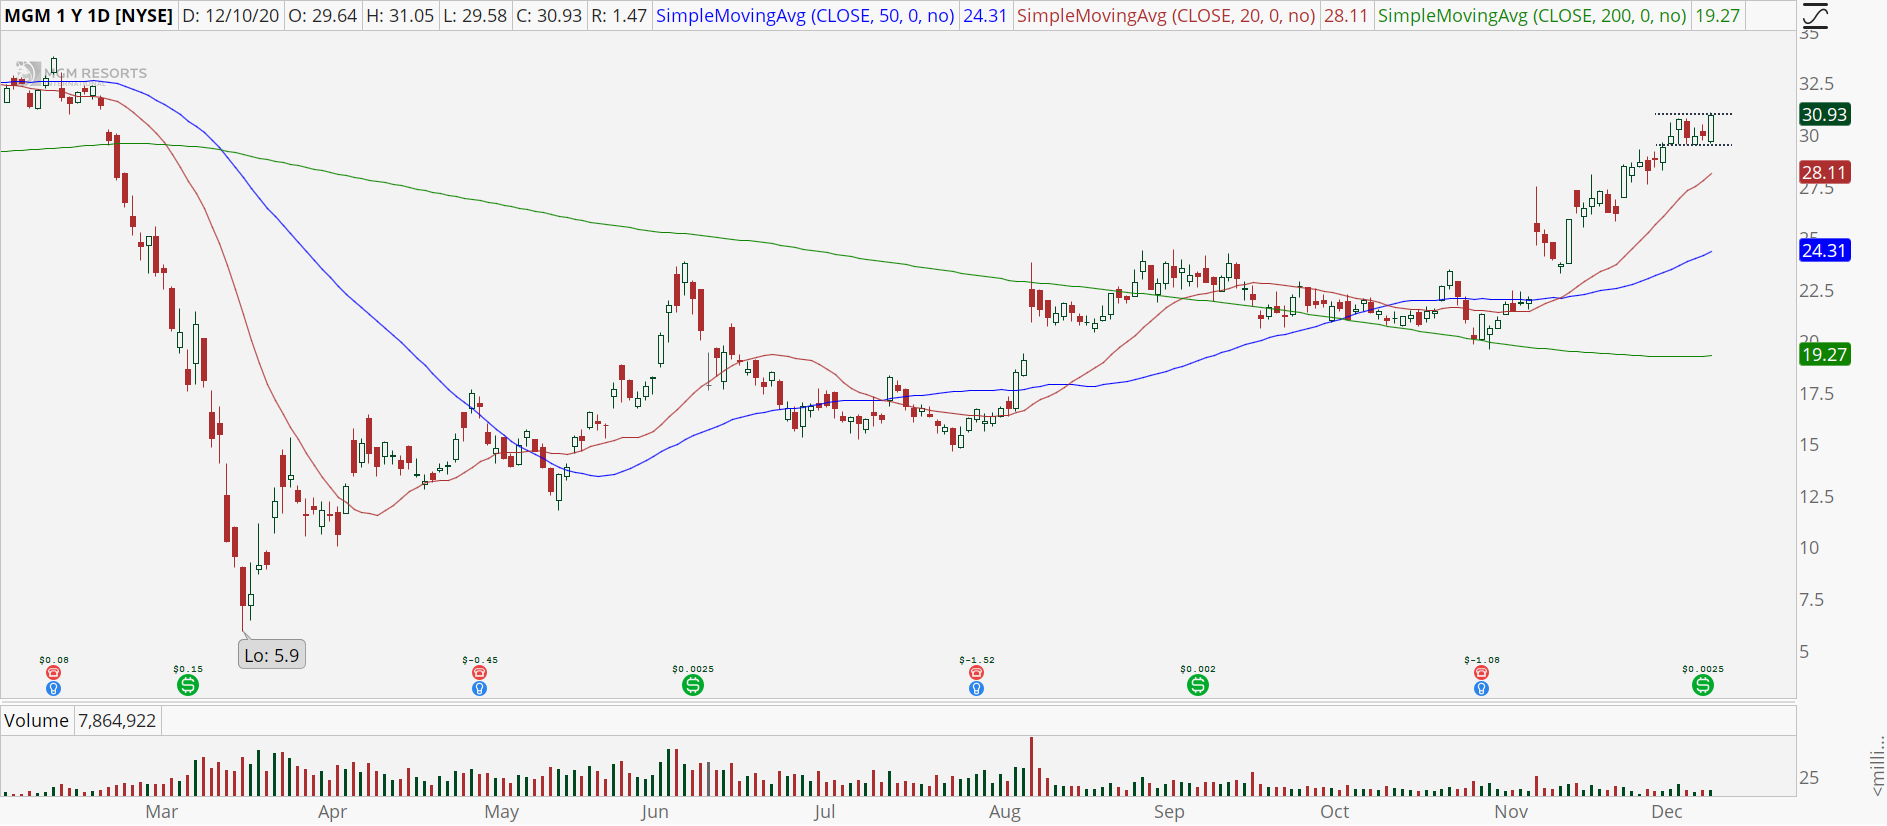 MGM Resorts (MGM) chart with high base breakout